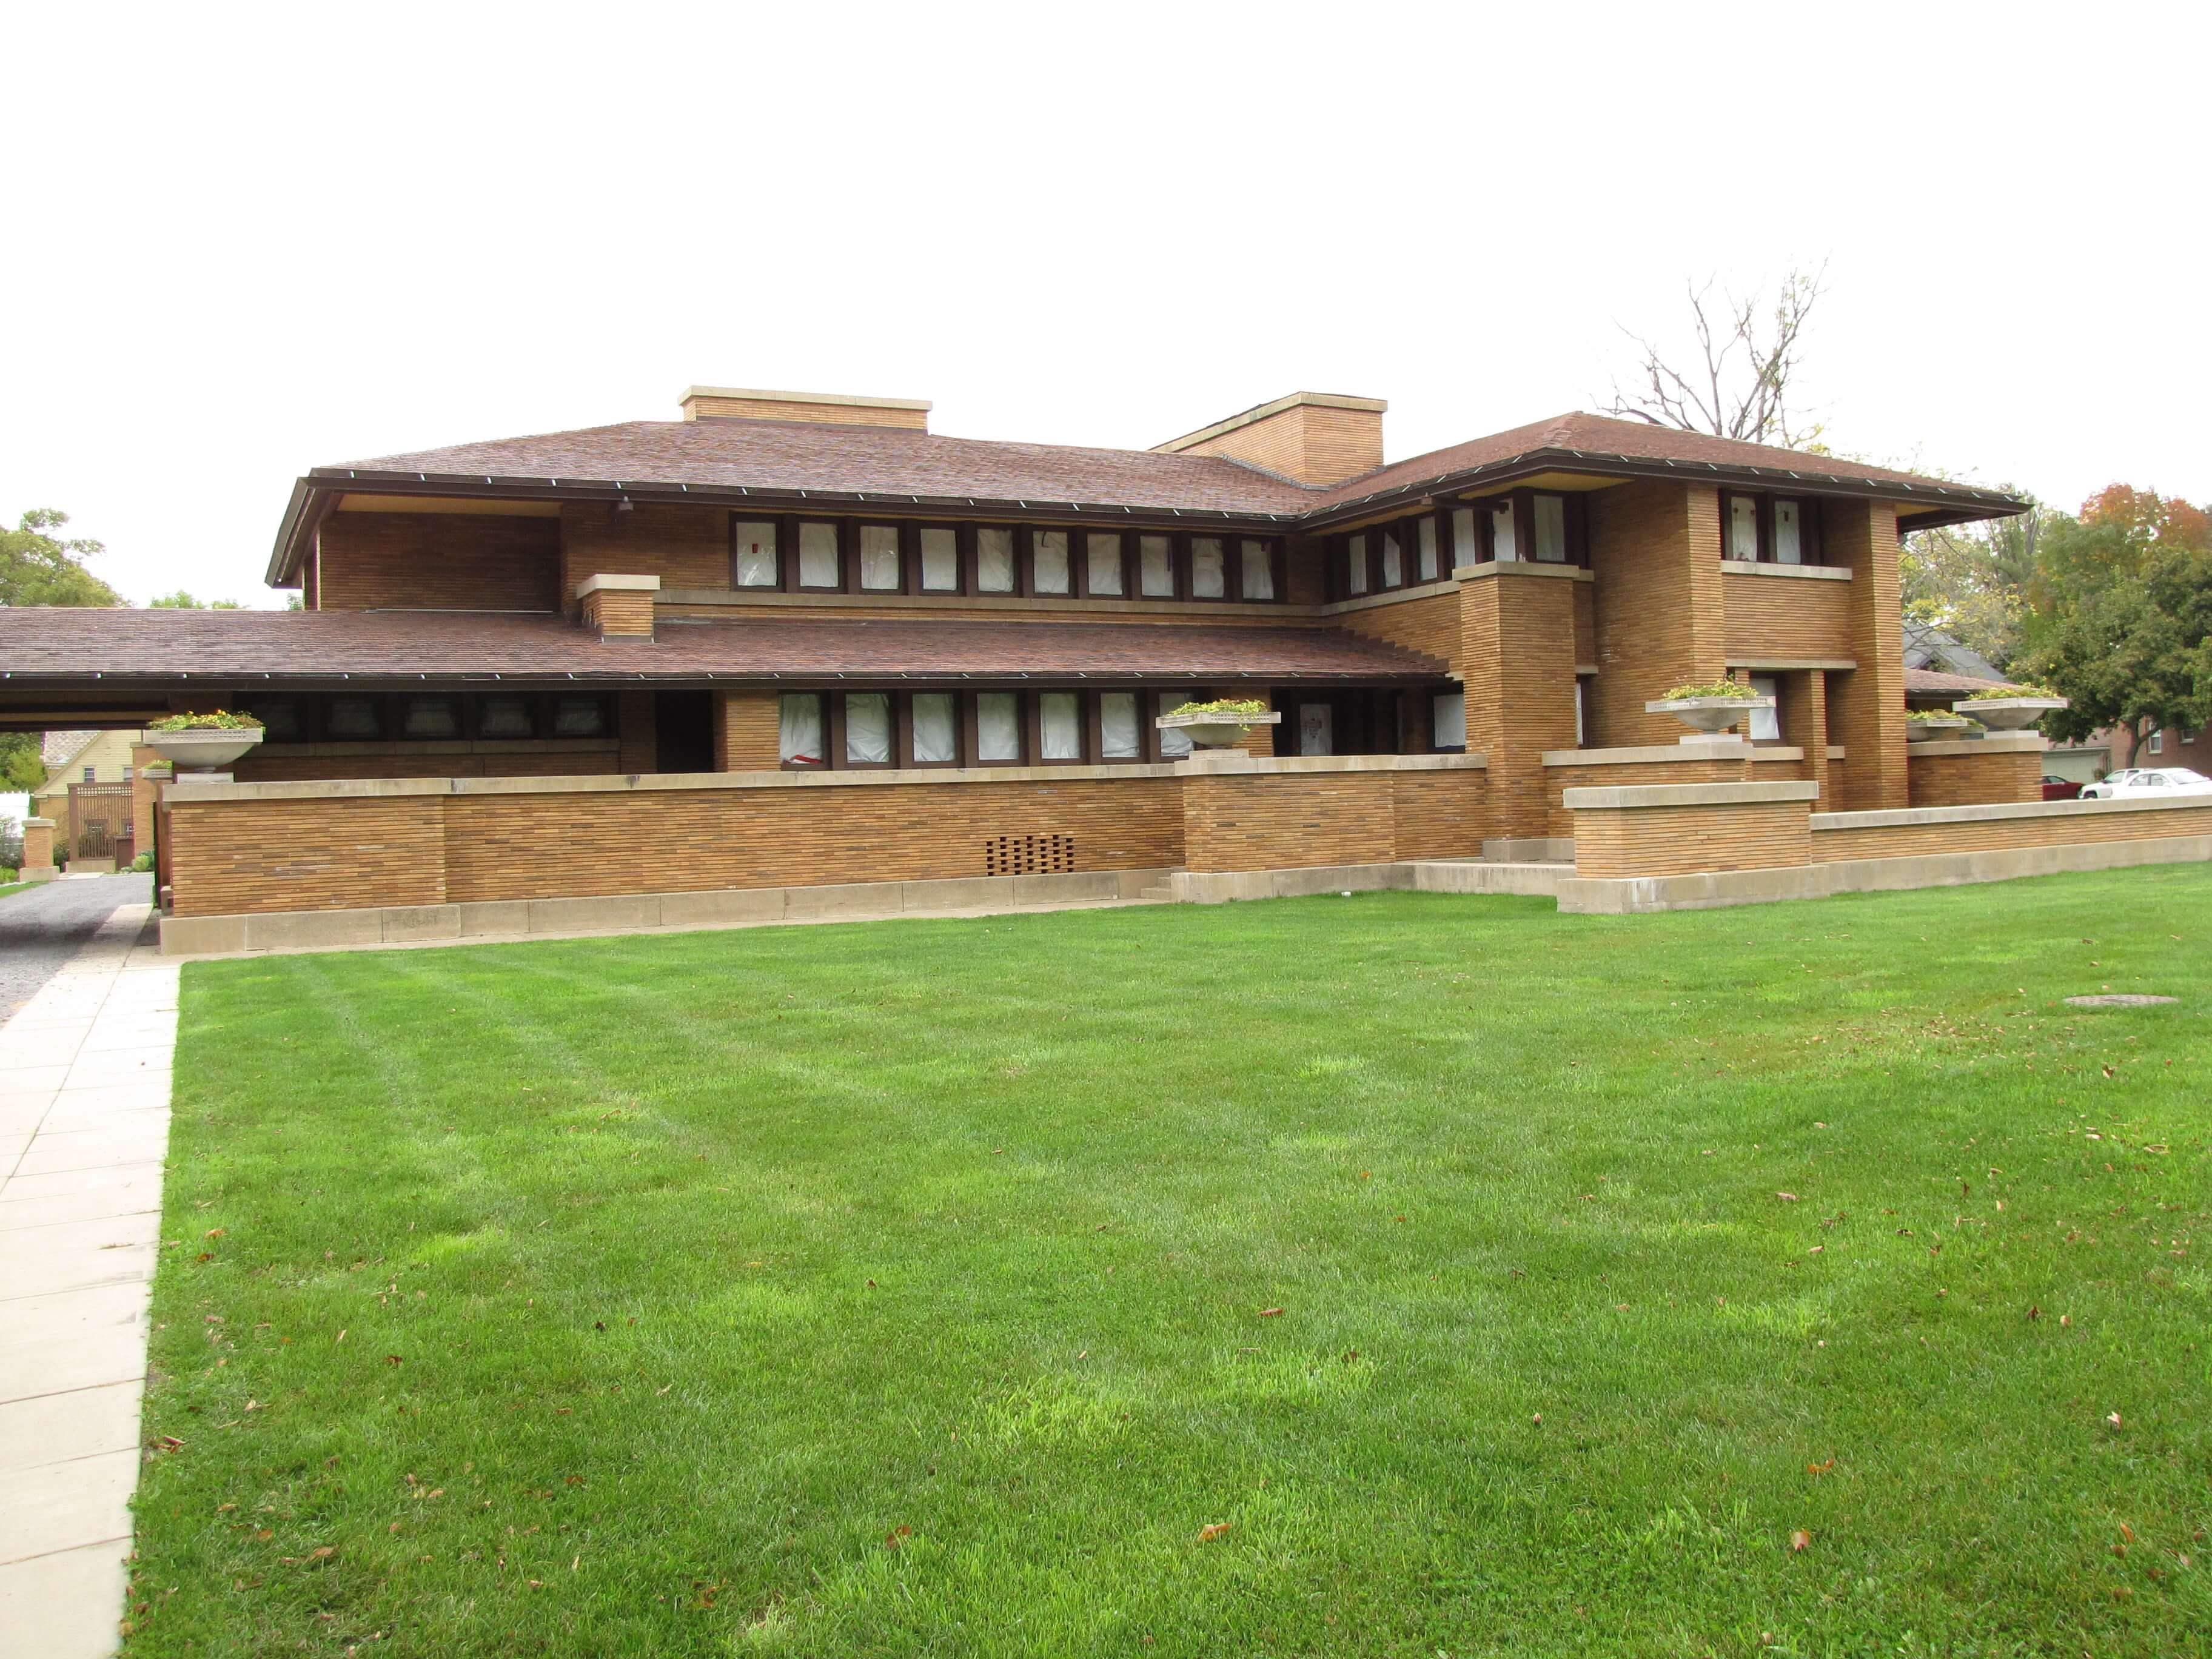 Top 10 Most Beautiful As Well As Innovative Buildings Of Frank Lloyd Wright Martin House Frank Lloyd Wright Frank Lloyd Wright Architecture